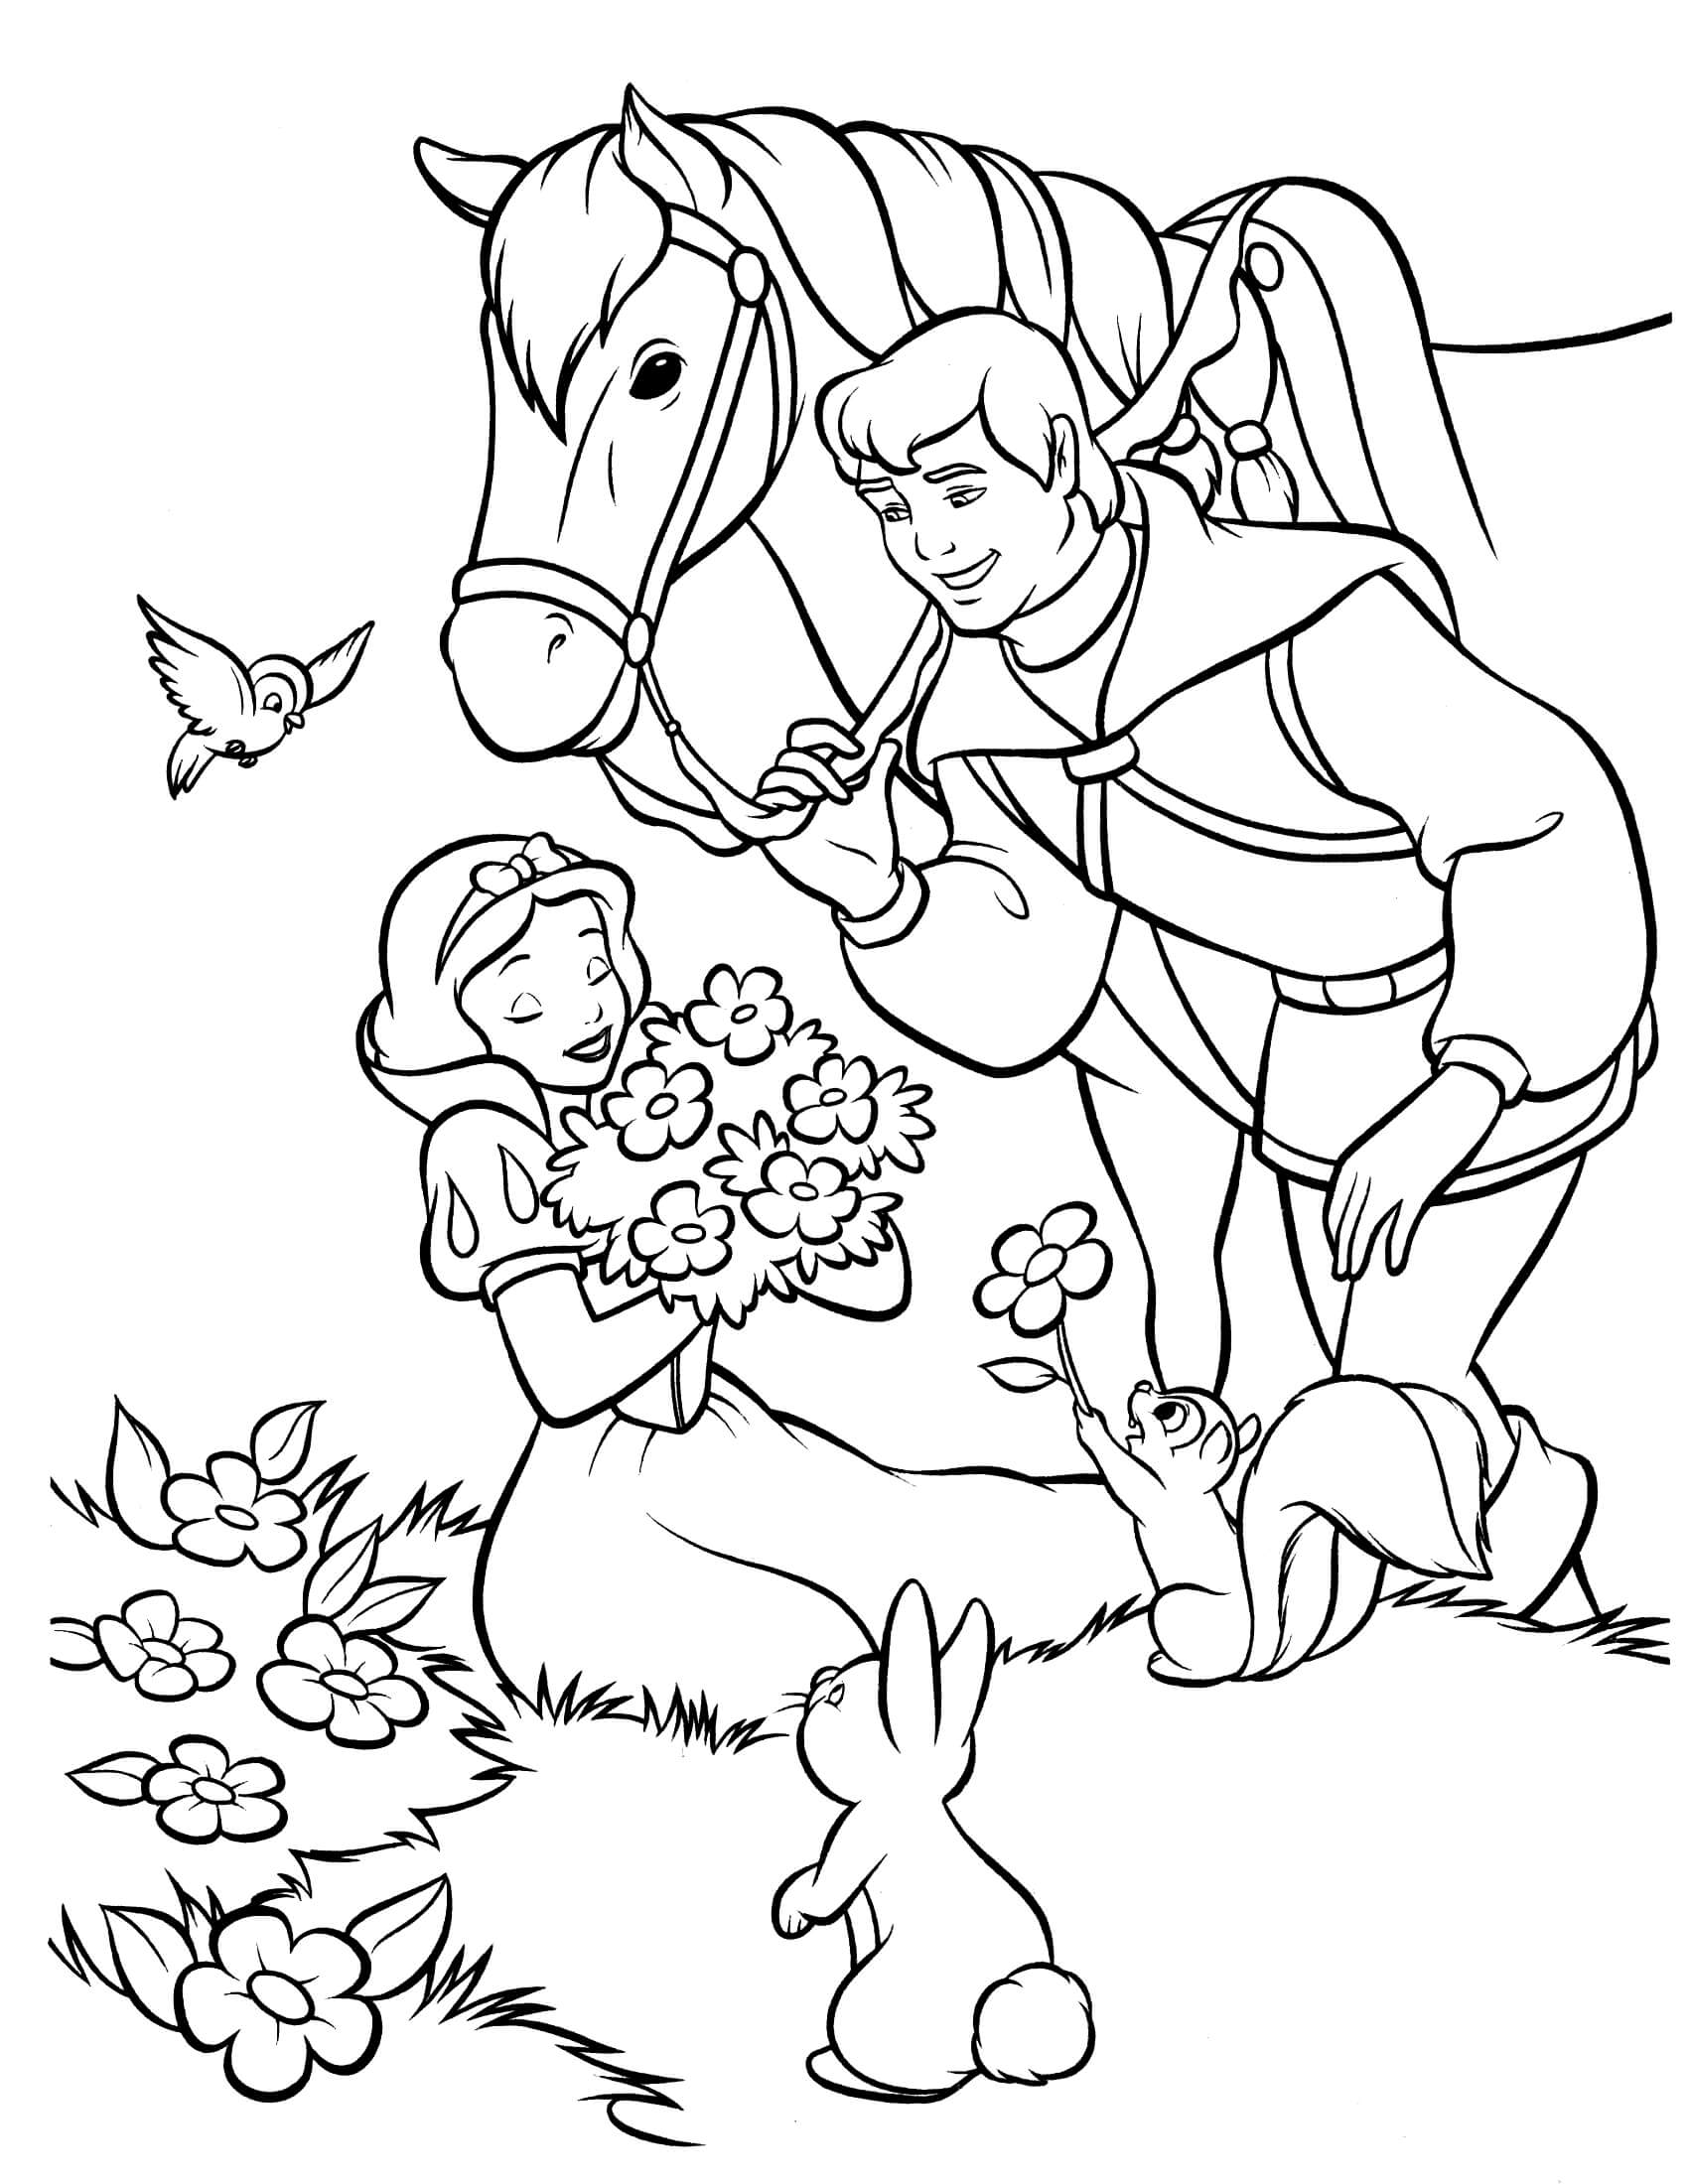 Snow white coloring pages best coloring pages for kids for Worksheet coloring pages